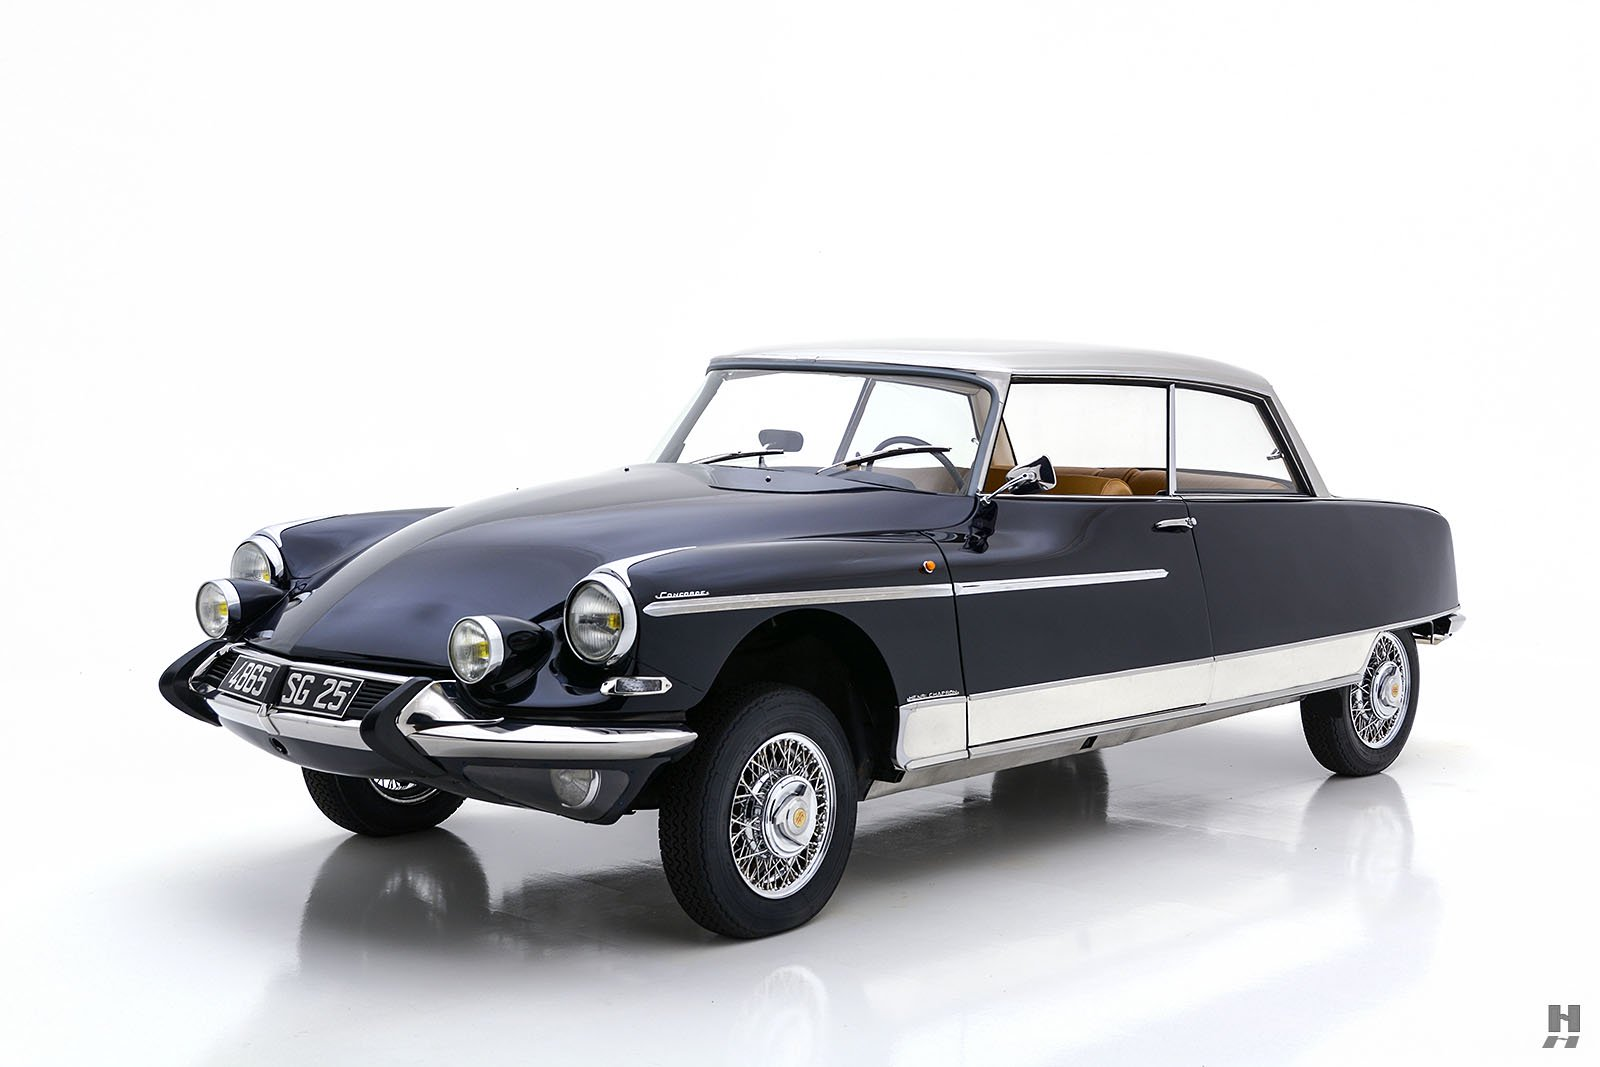 Citroen-DS21-Concorde-coupe-for-sale-1